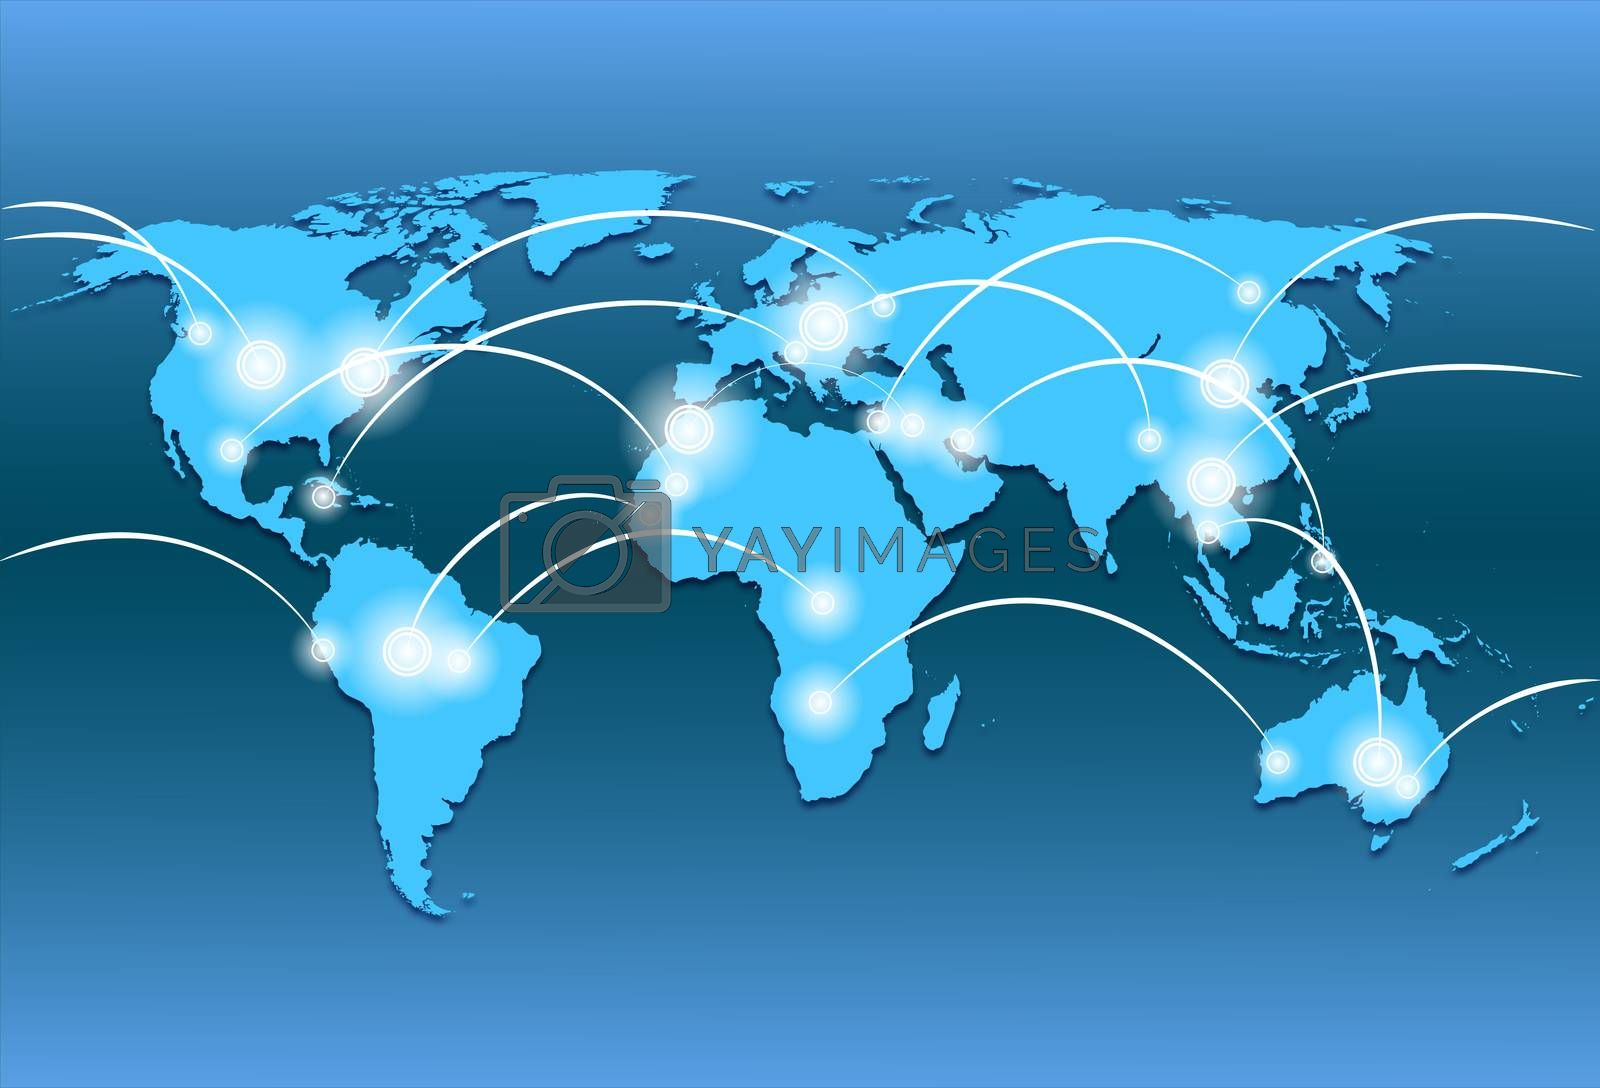 Royalty free image of world map and world wide web by mizar_21984